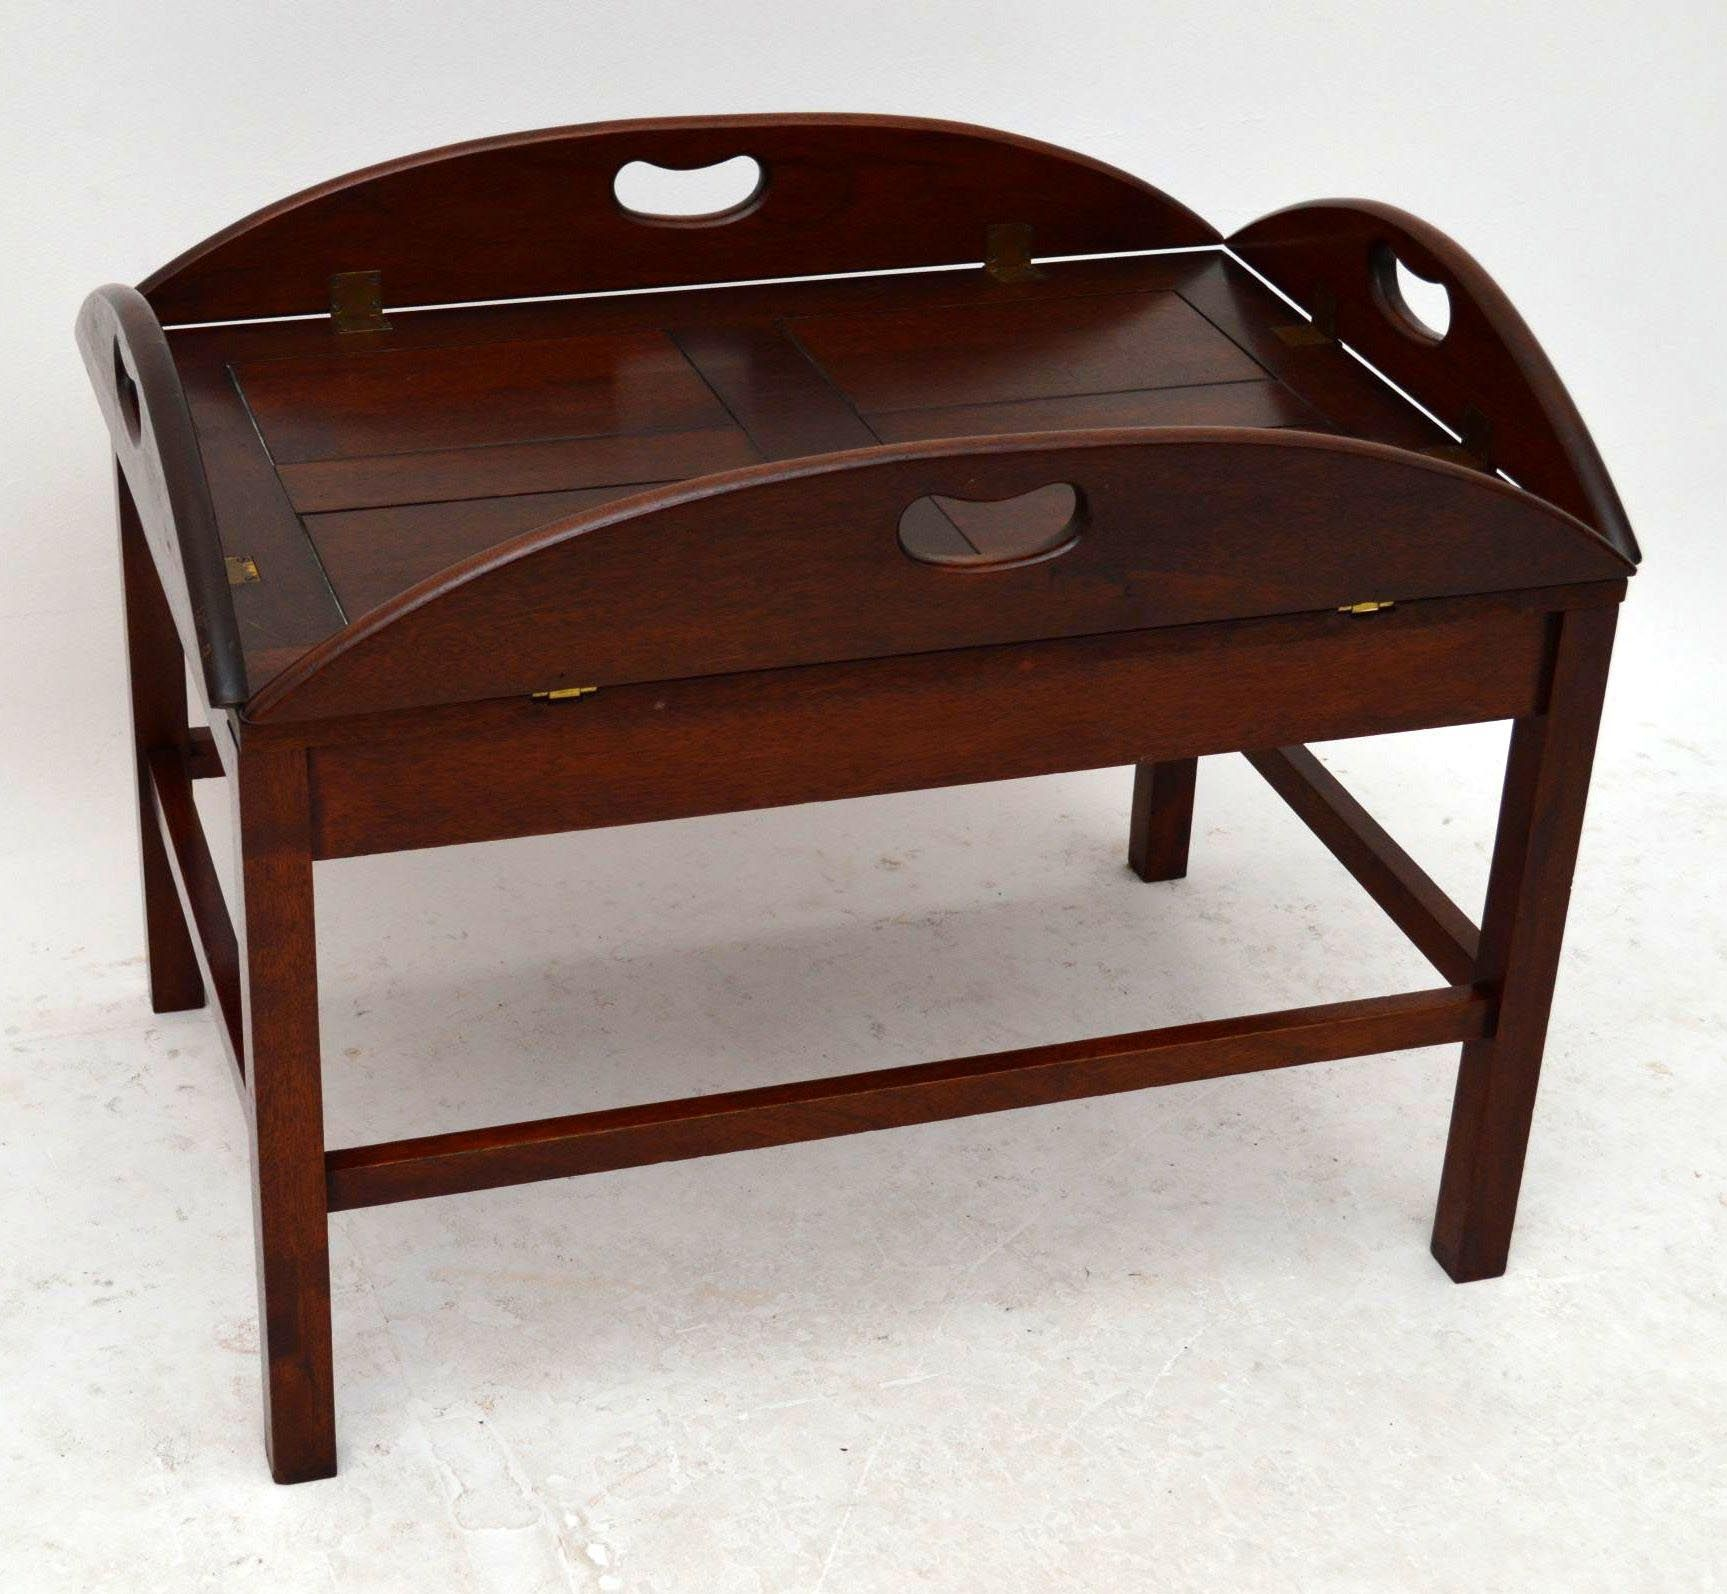 Vintage Butler Coffee Table: Mahogany Butler Tray Coffee Table